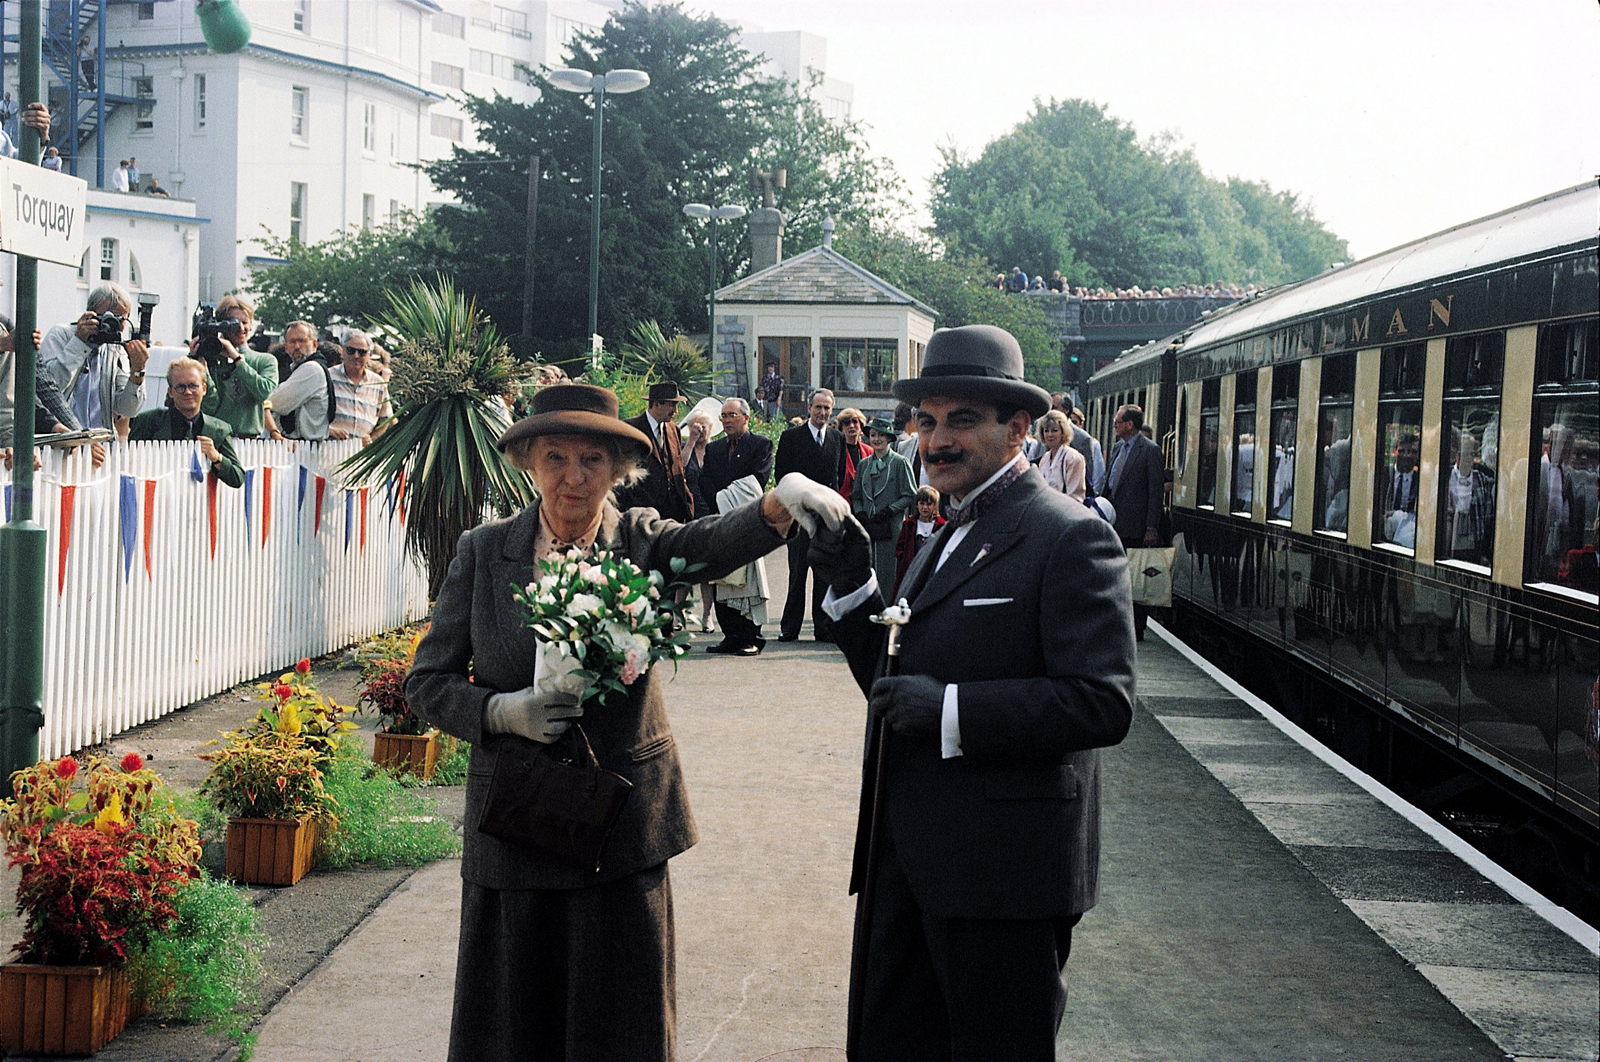 A picture of Joan Hickson and David Suchet as Agatha Christie's  Miss Marple and Hercule Poirot at Torquay station